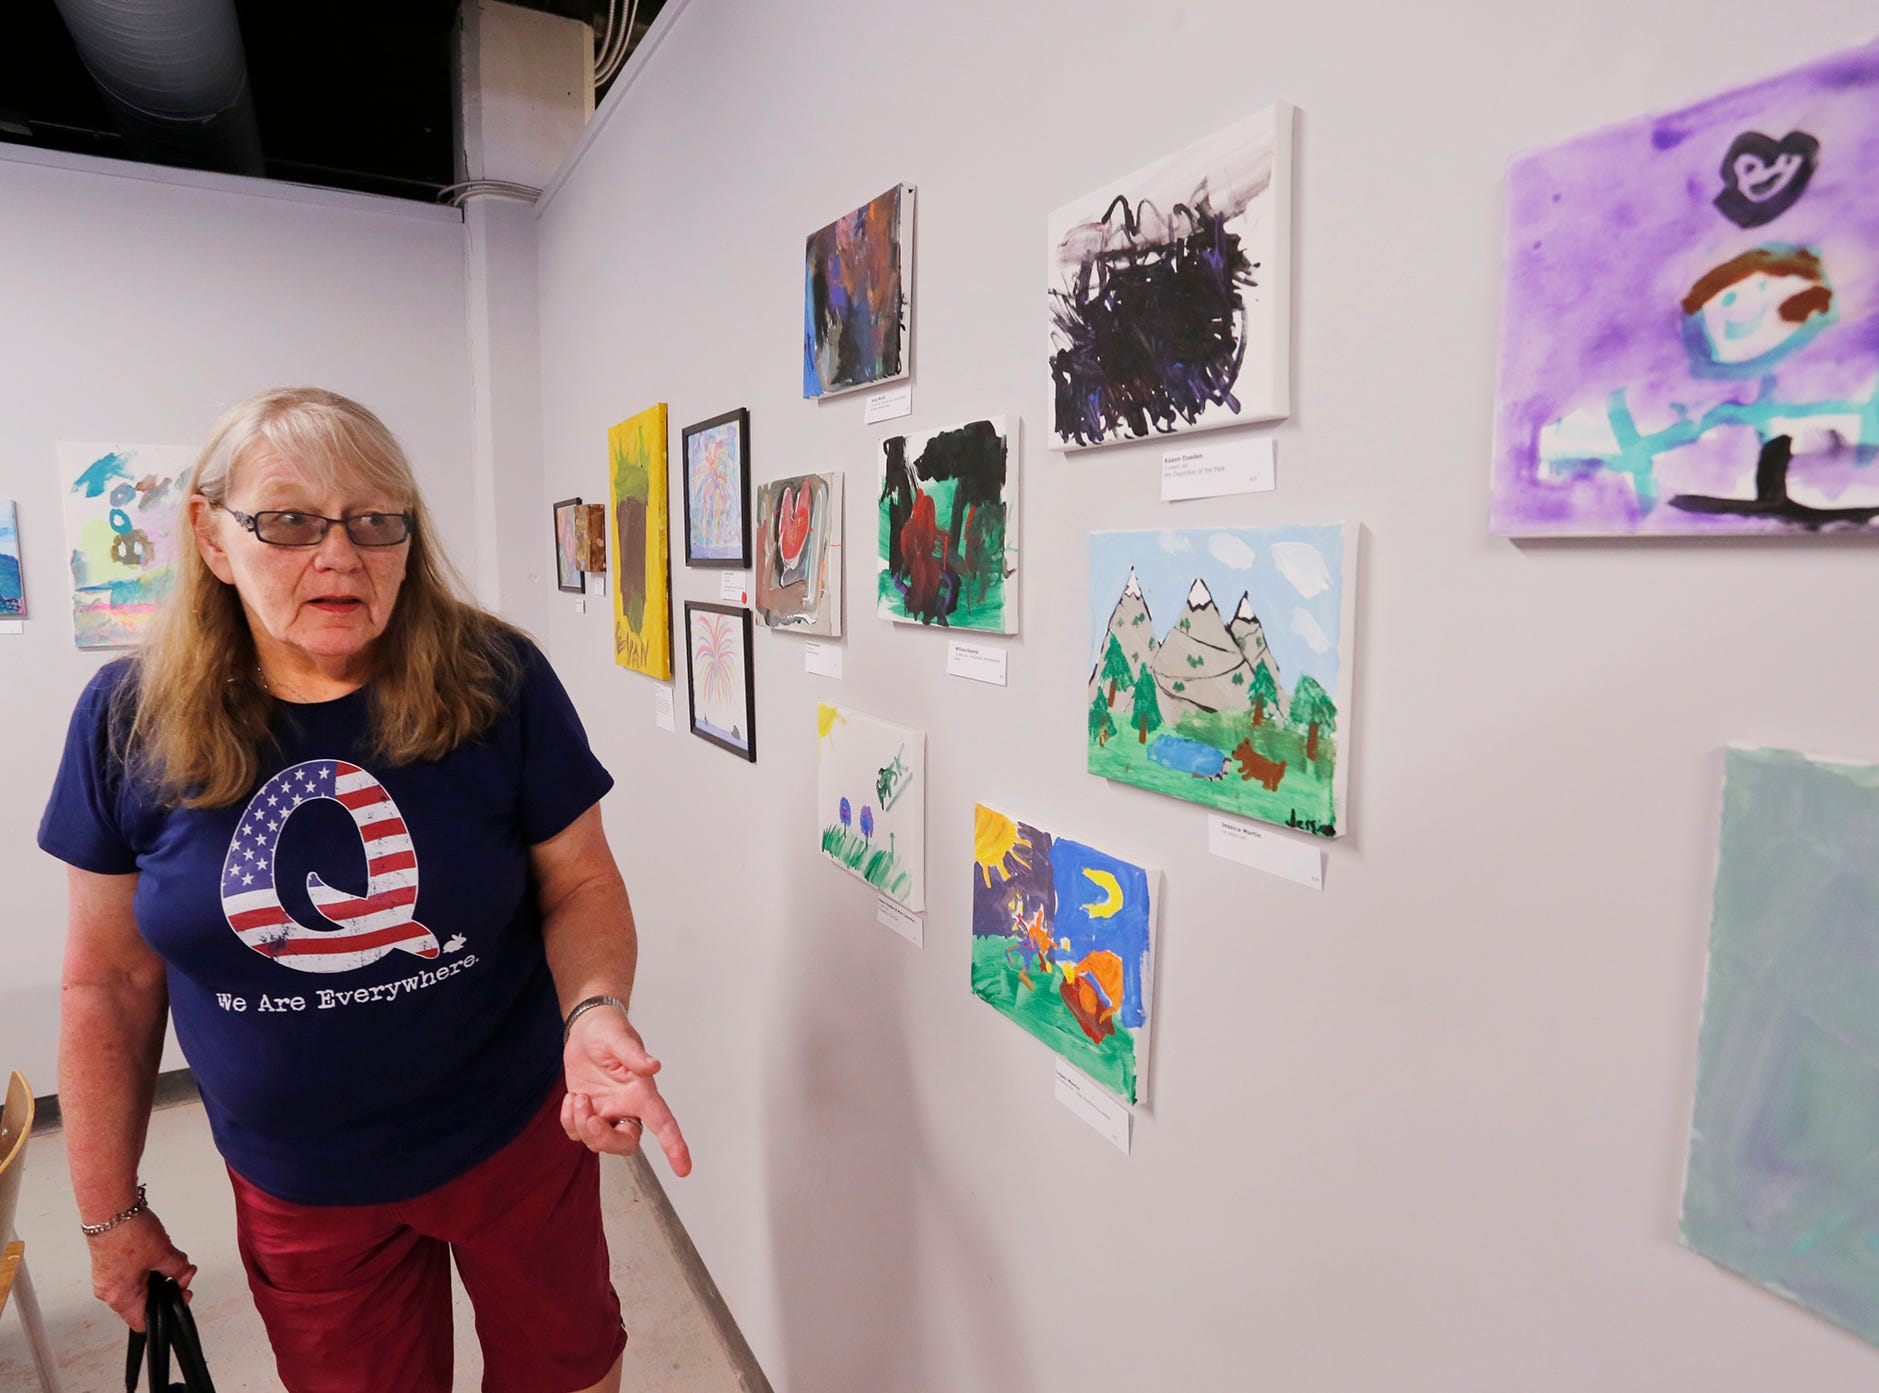 Shari Mikaelsson looks at an art exhibit to benefit Special Parents Special Kids Thursday, September 13, 2018, at Lala Gallery & Studio, 511 Ferry Street in downtown Lafayette. Mikaelsson's nephew, Kason Doeden, has a piece displayed in the exhibit.